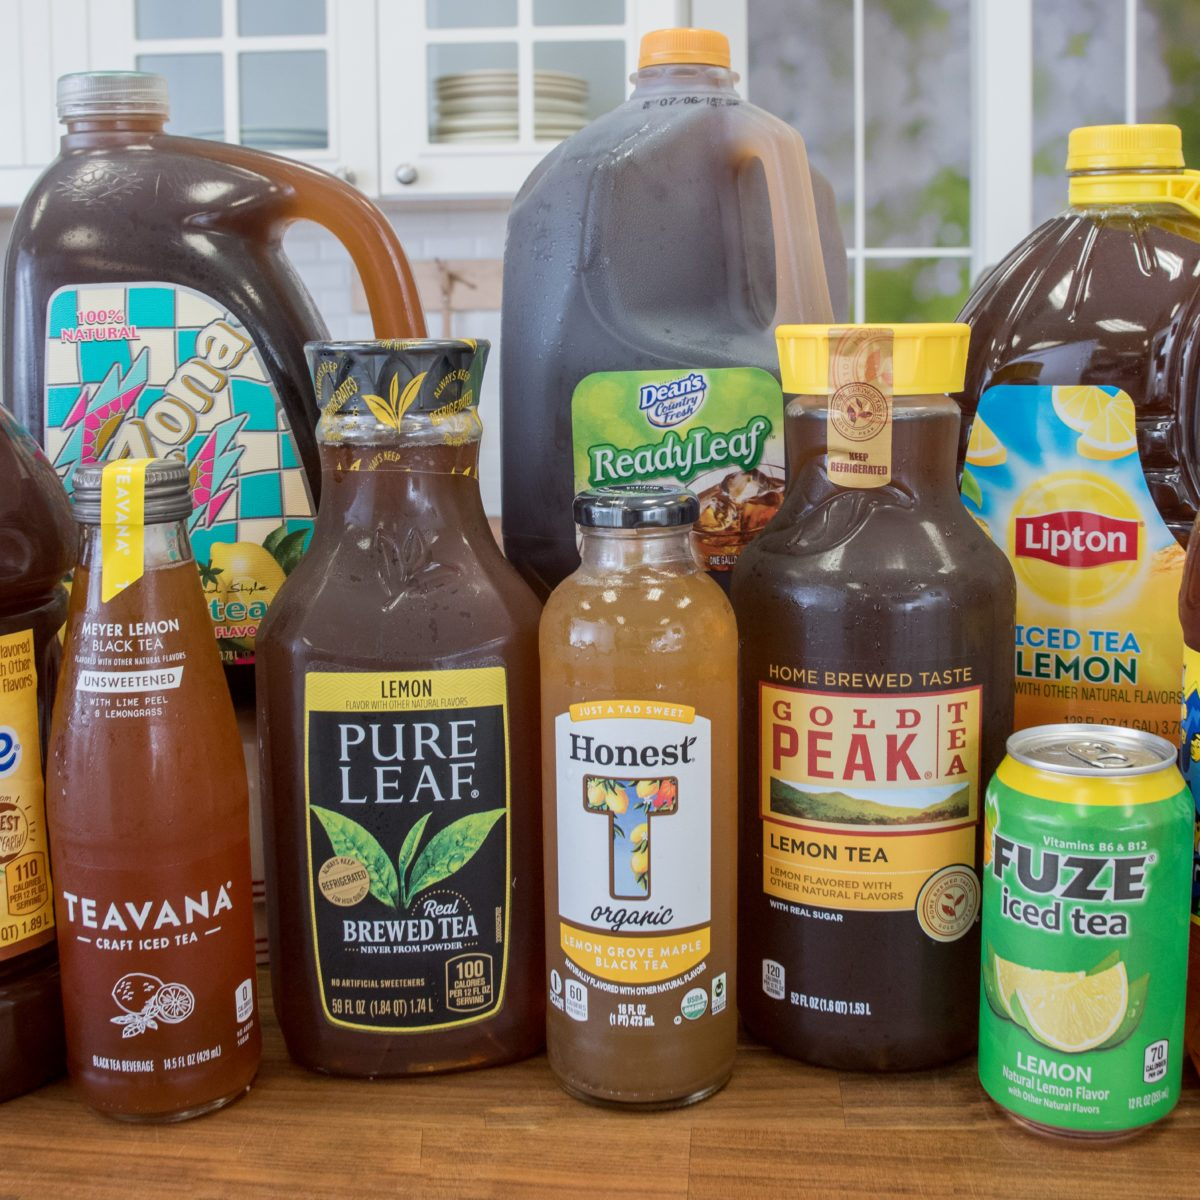 The Best Iced Tea Brand, According to a